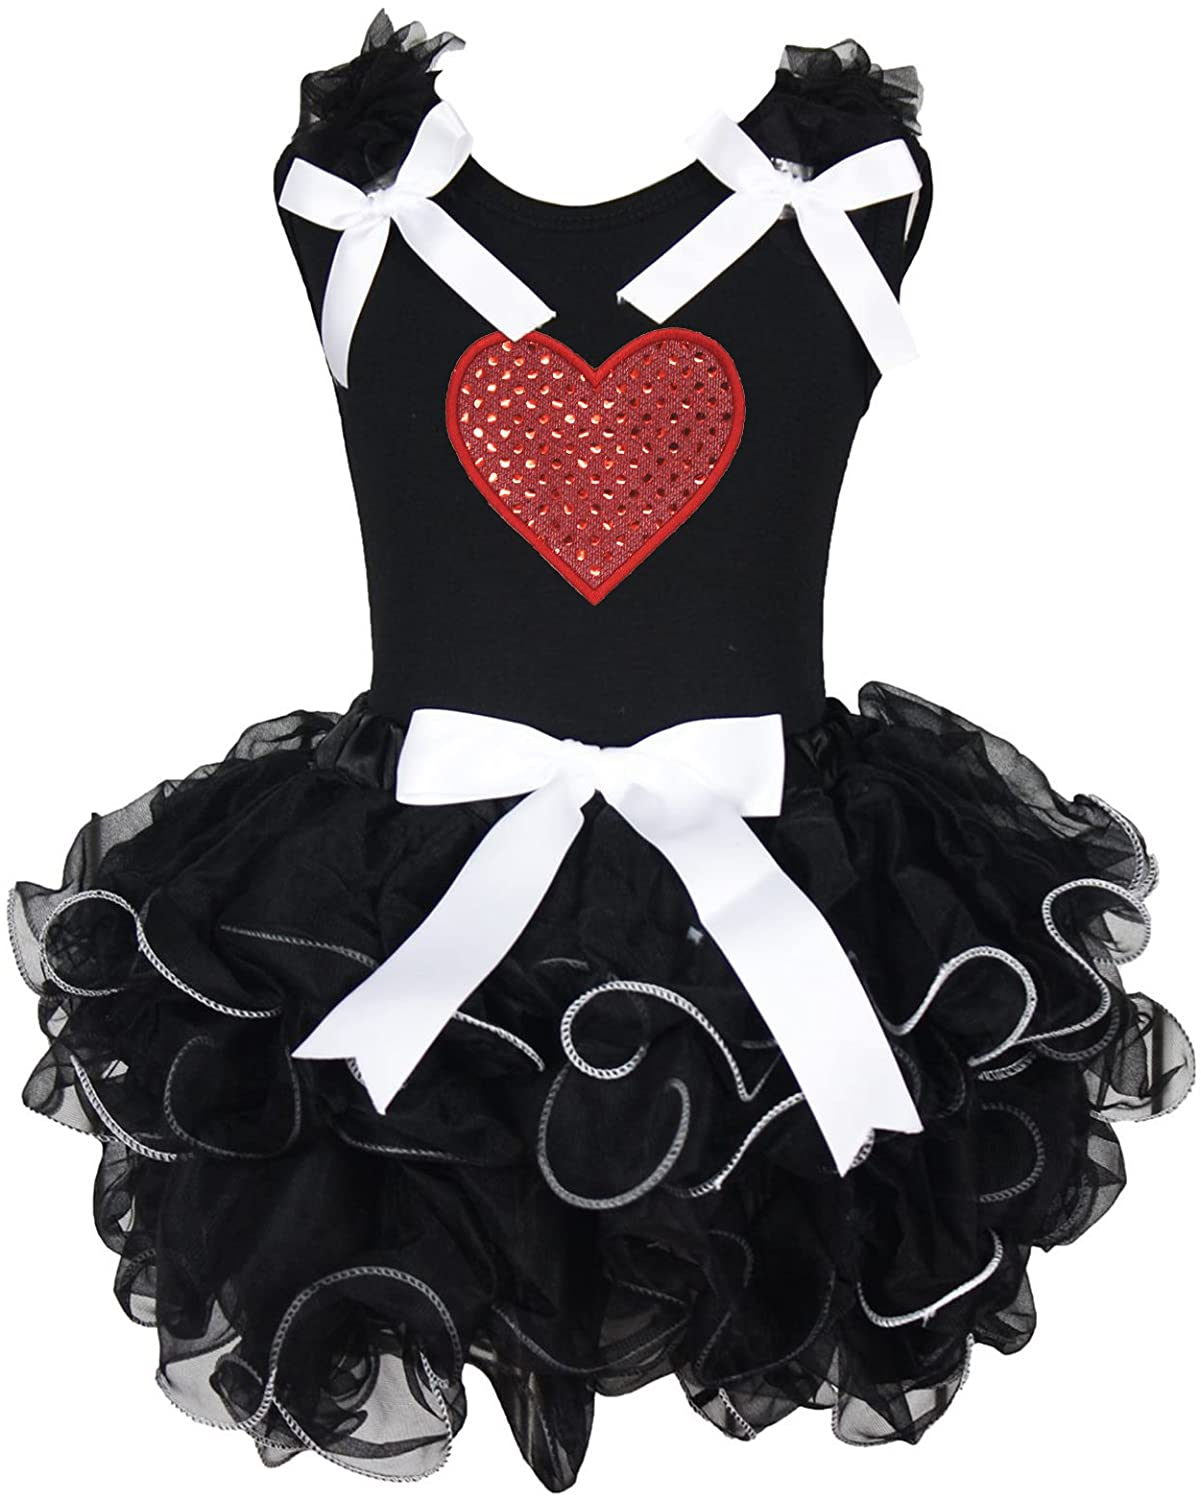 Petitebella Valentine Dress Red Sequin Heart Black Shirt White Bow Petal Skirt Set 1-8y